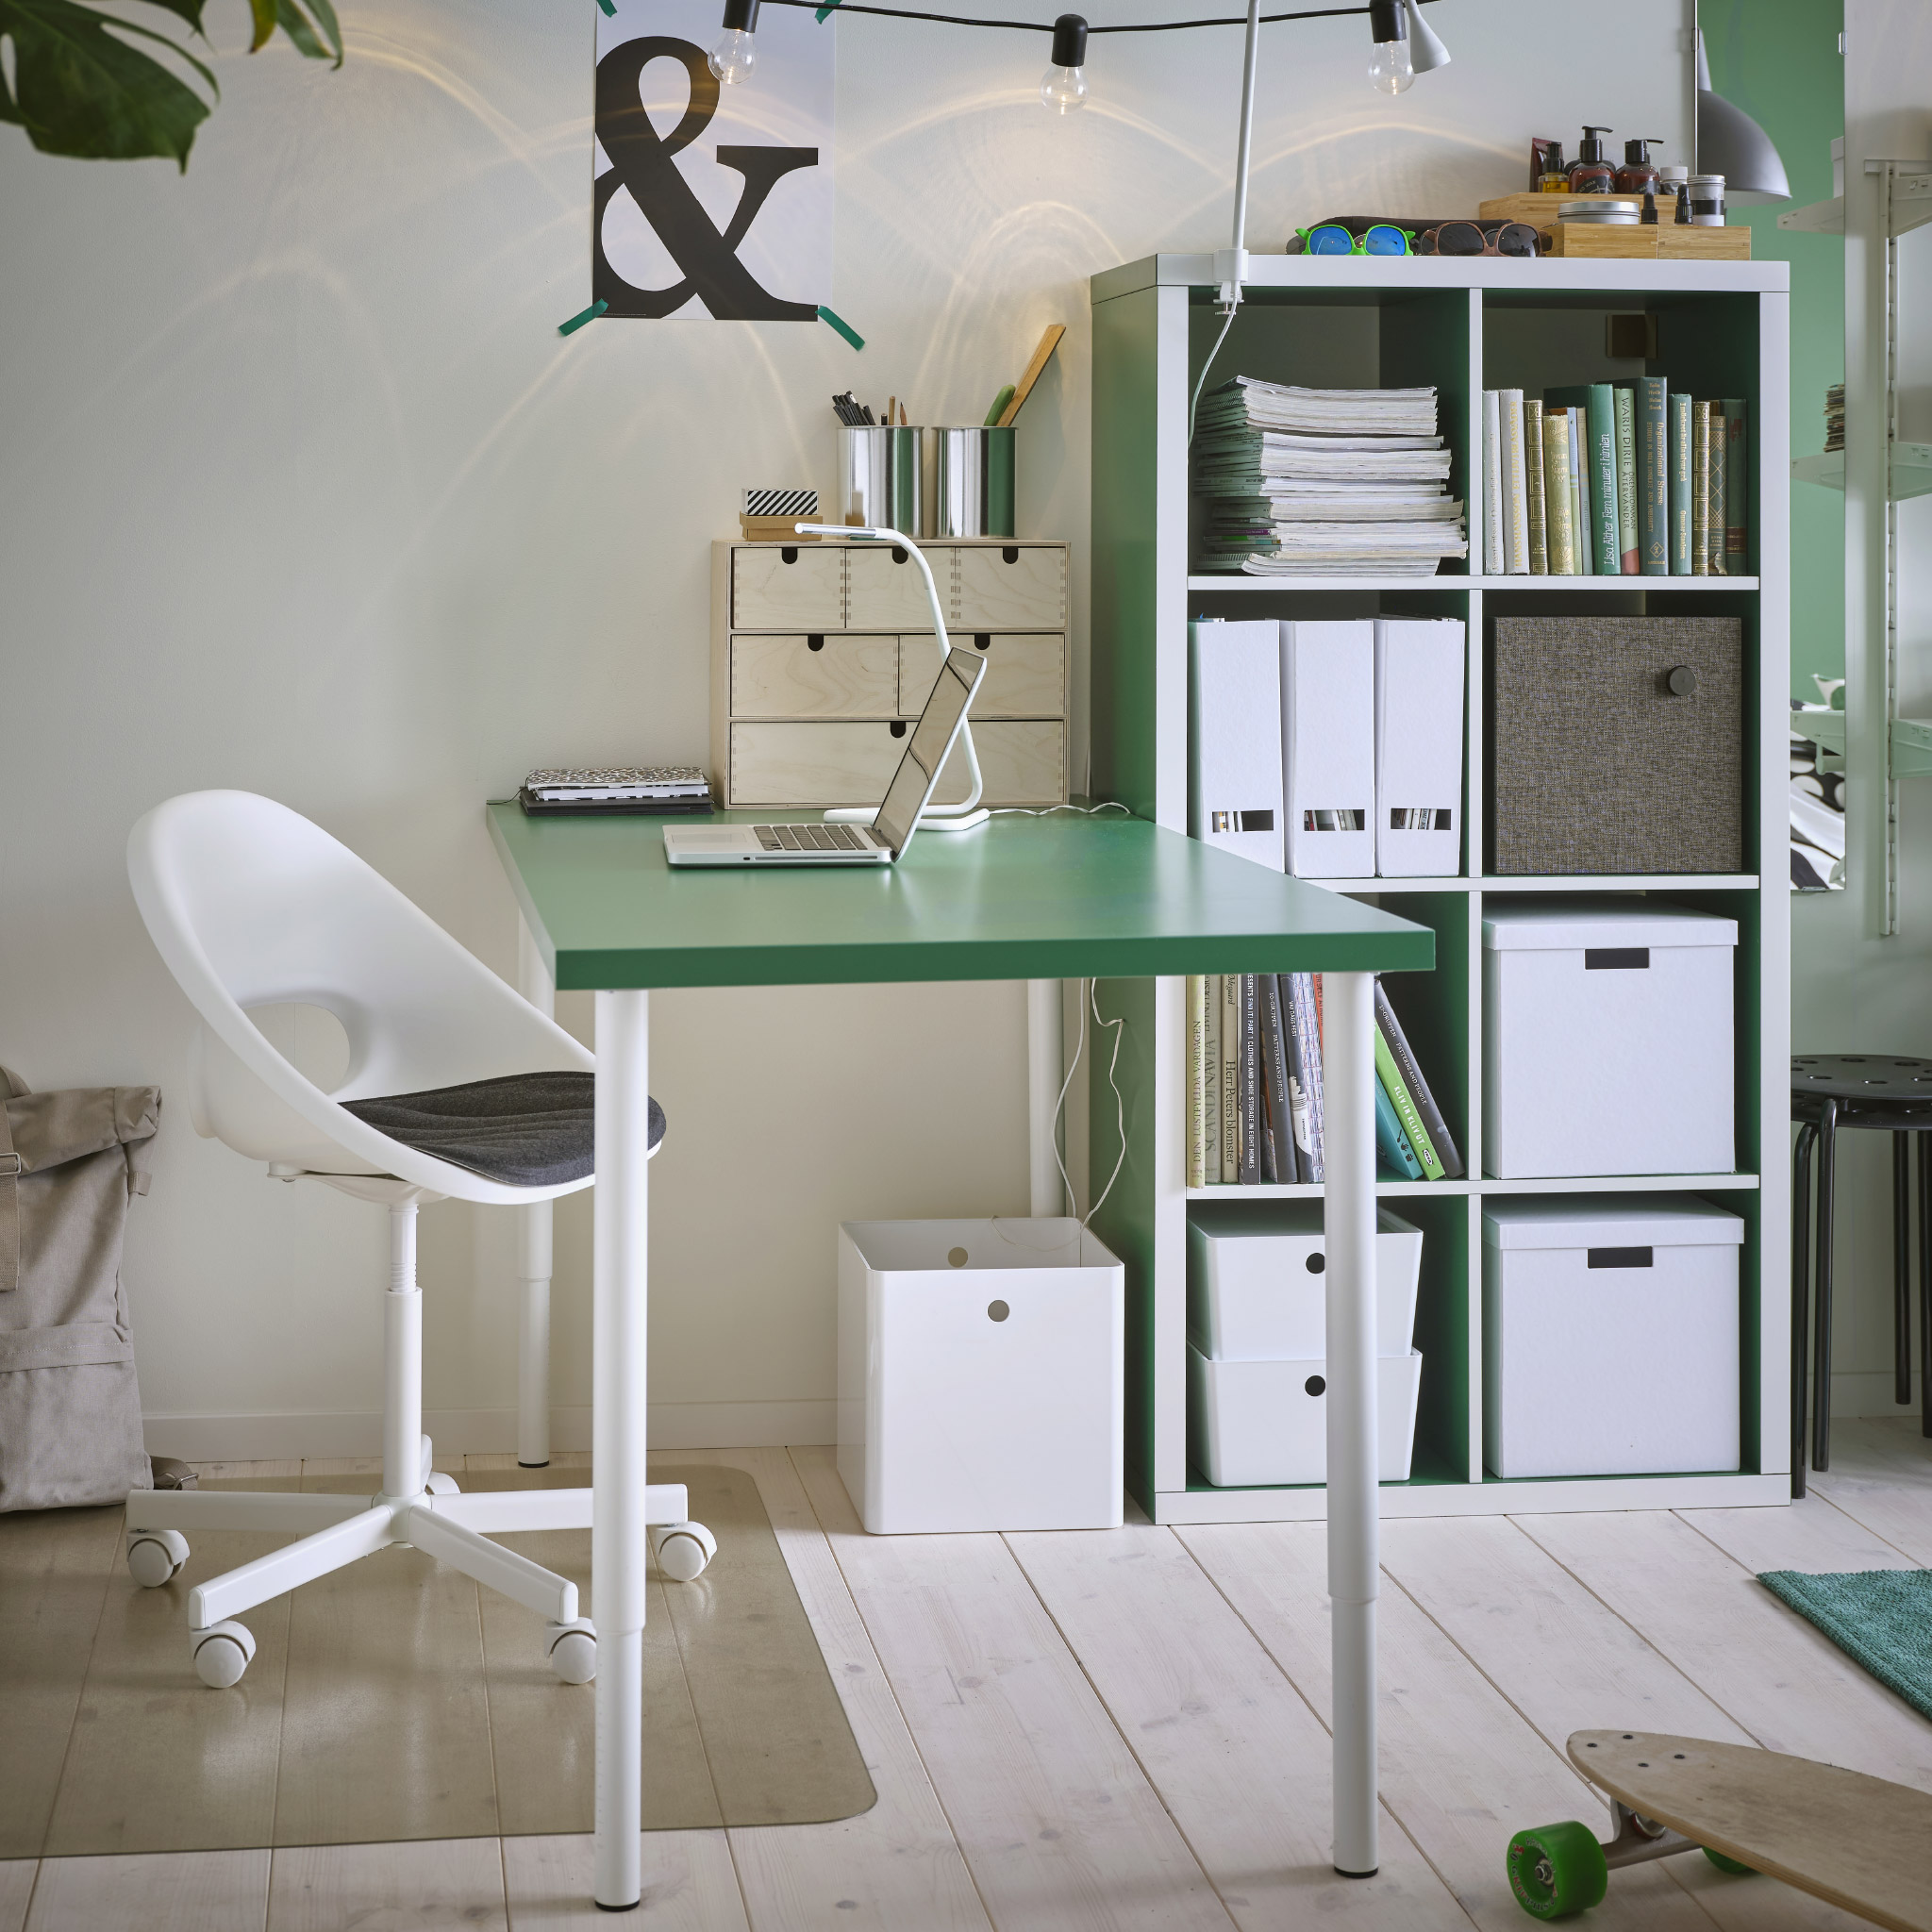 Study space with a green table with white legs, a white swivel chair, a white table lamp and a transparent floor protector.